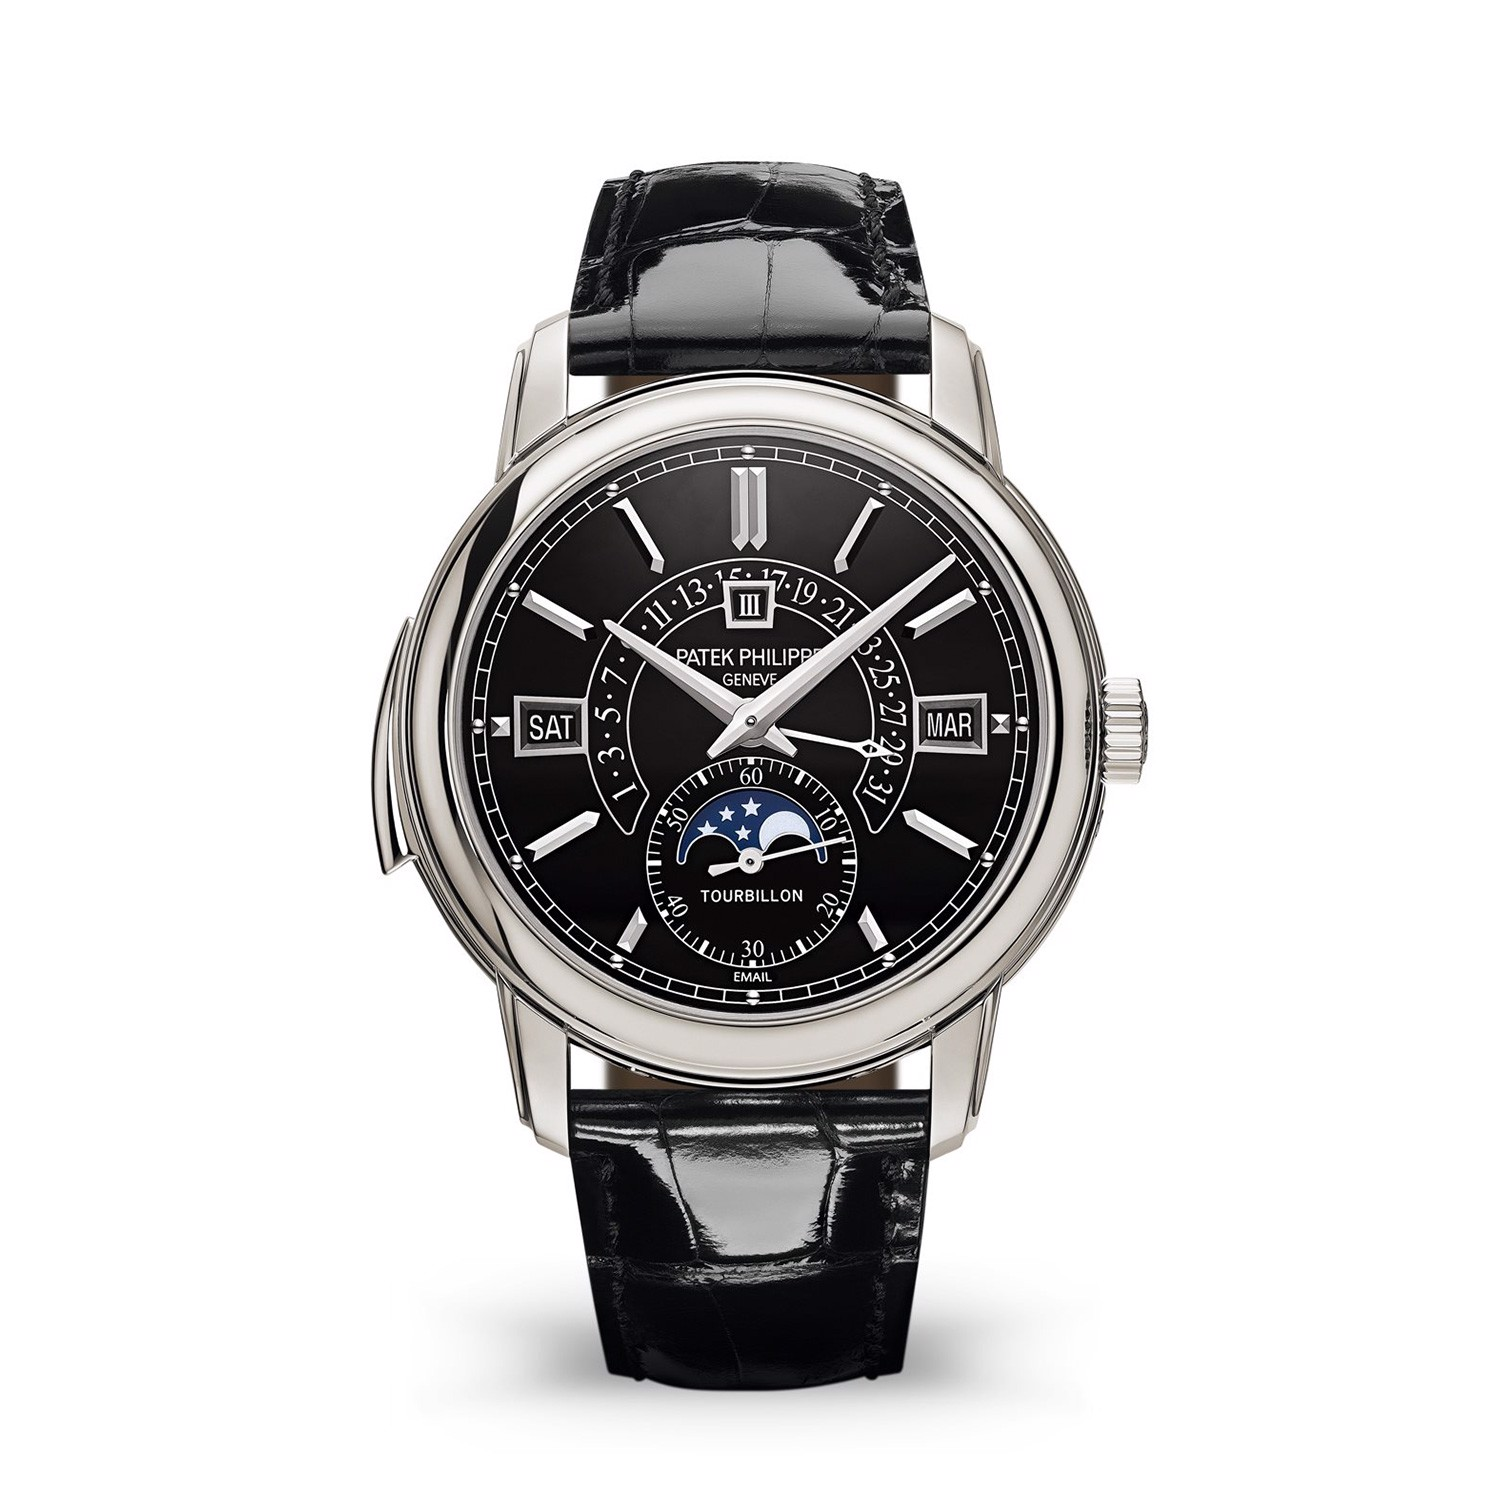 Patek Philippe Grand Complications 5316P-001 Minute Repeater Tourbillon Perpetual Calendar